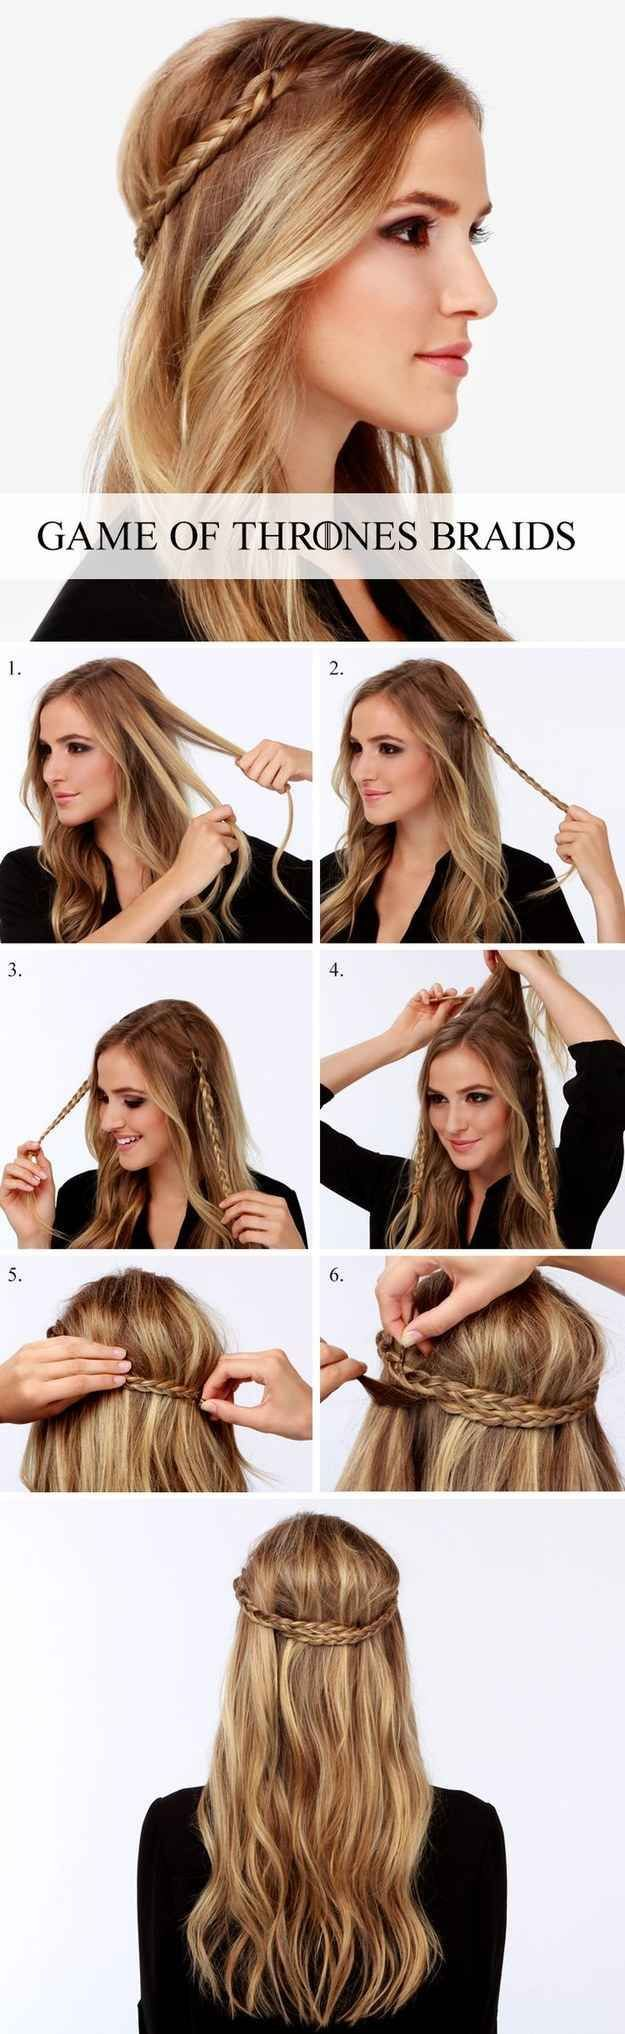 Pretty Braided Crown Hairstyle Tutorials and Ideas / http://www.himisspuff.com/easy-diy-braided-hairstyles-tutorials/24/